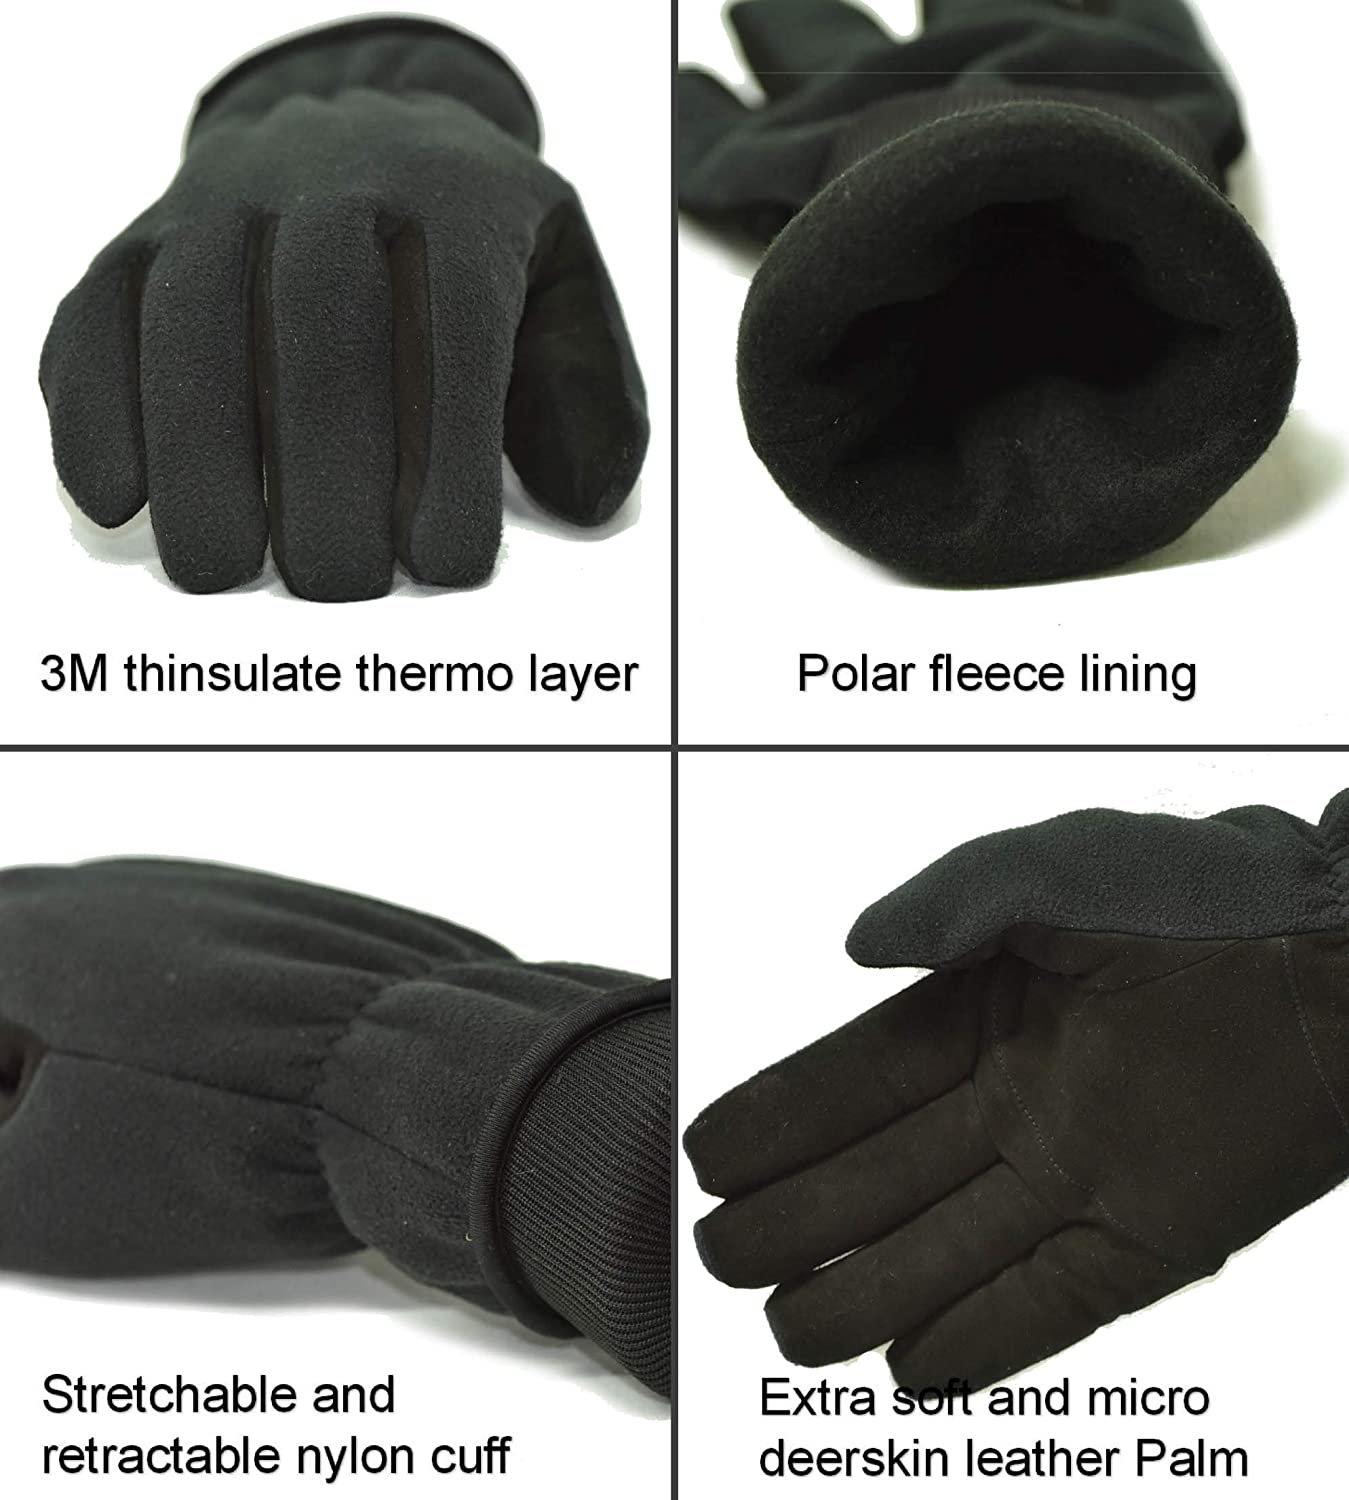 2 PAIR VALUE PACK Premium Deerskin Polar fleece Back and thinsulate lining Winter Outdoor Gloves size Large Themo Gloves 2 pairs cold weather gloves